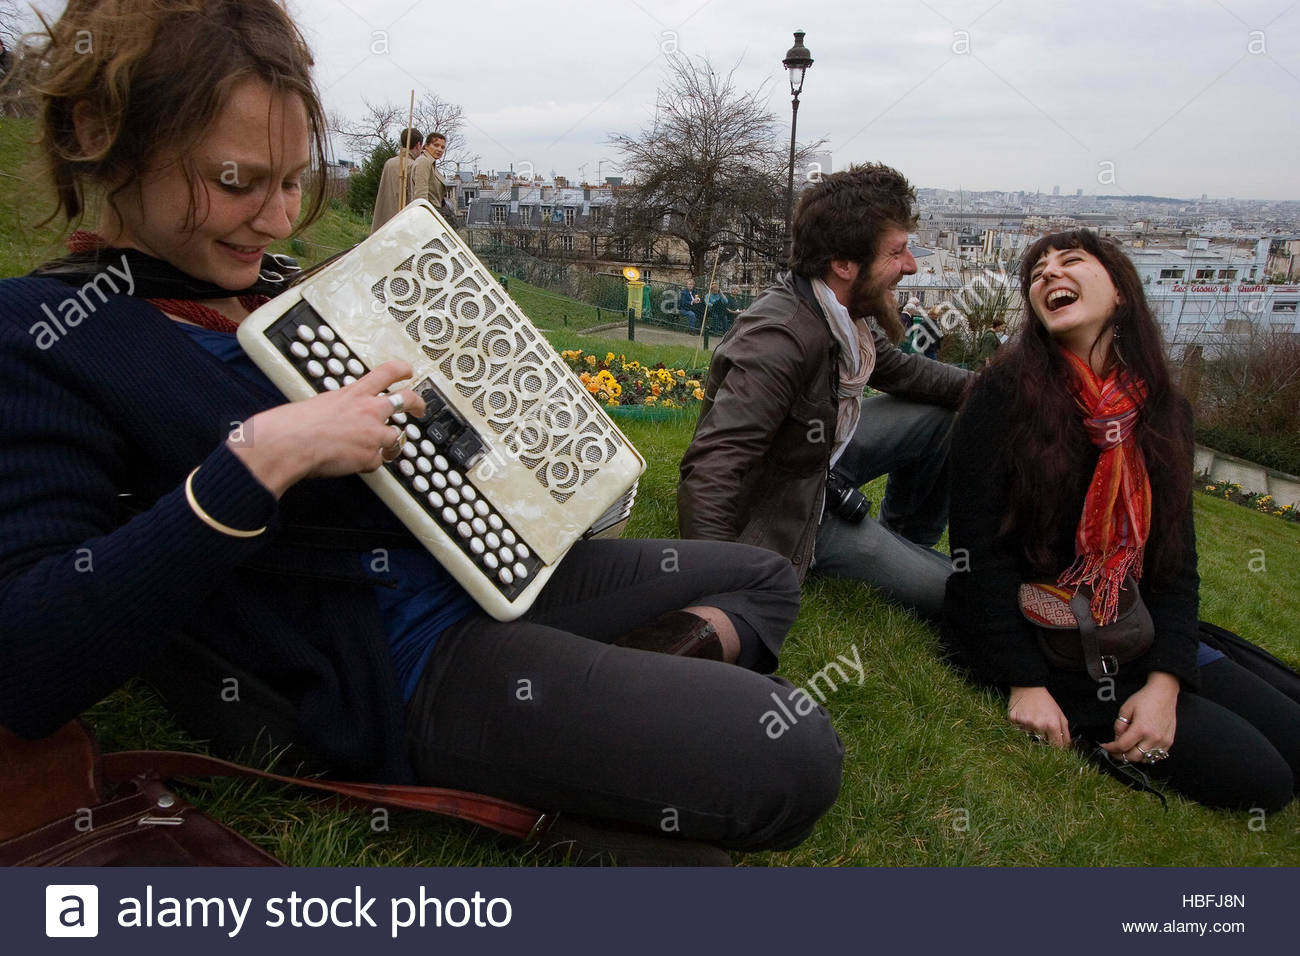 Friends meet on a lawn below Sacre Coeur for accordion music and laughs. - Stock Image